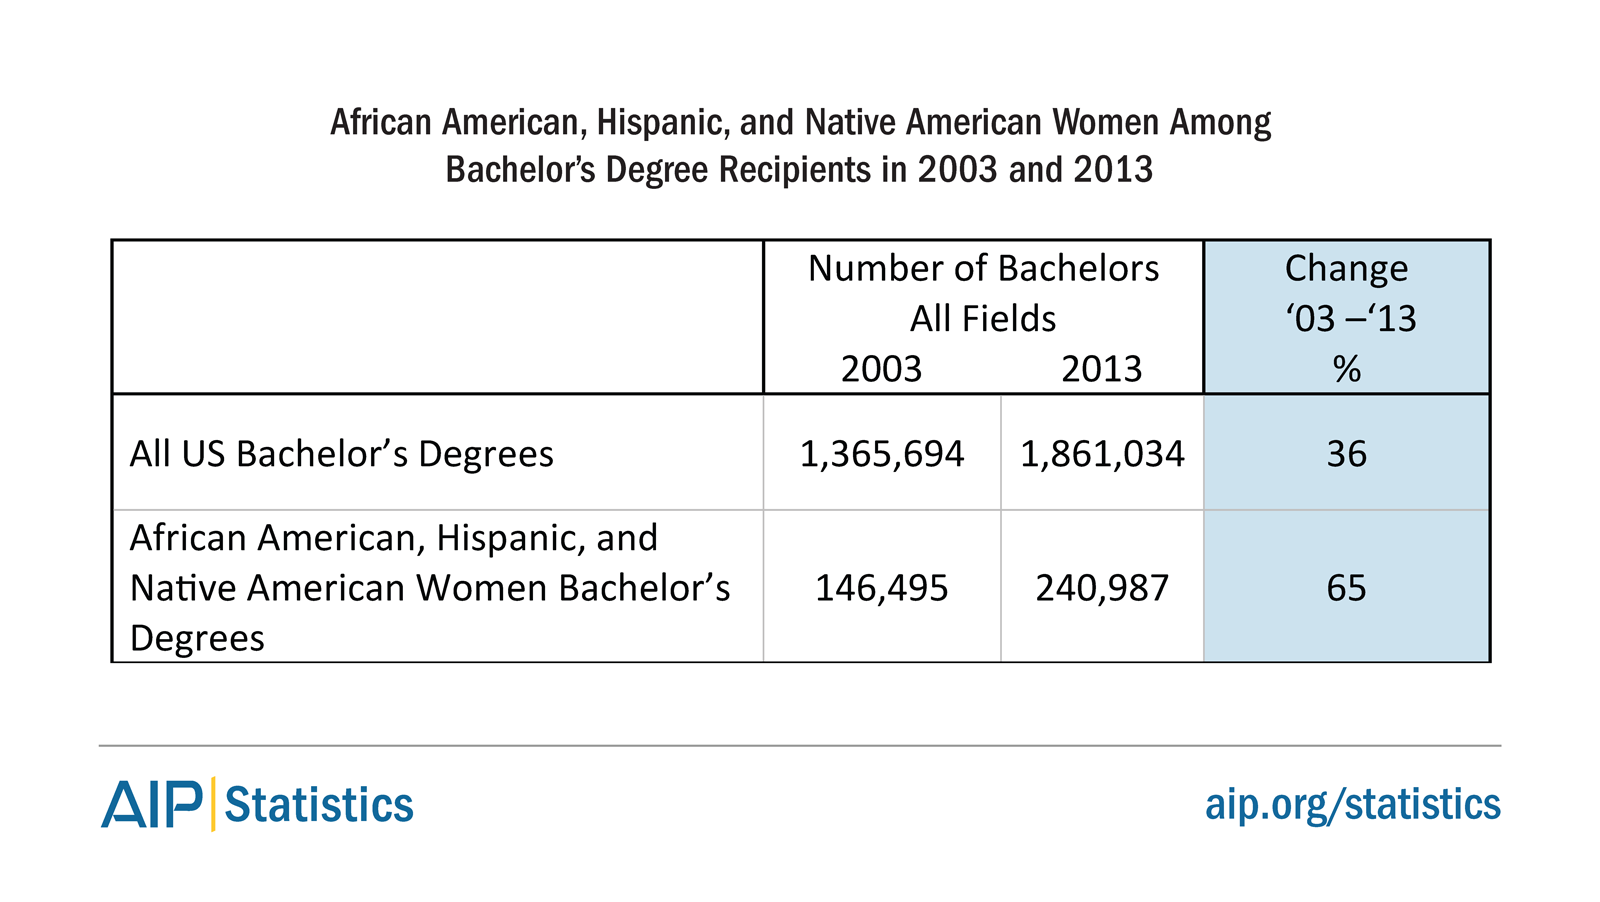 African American, Hispanic, and Native American Women Among Bachelor's Degree Recipients in 2003 and 2013